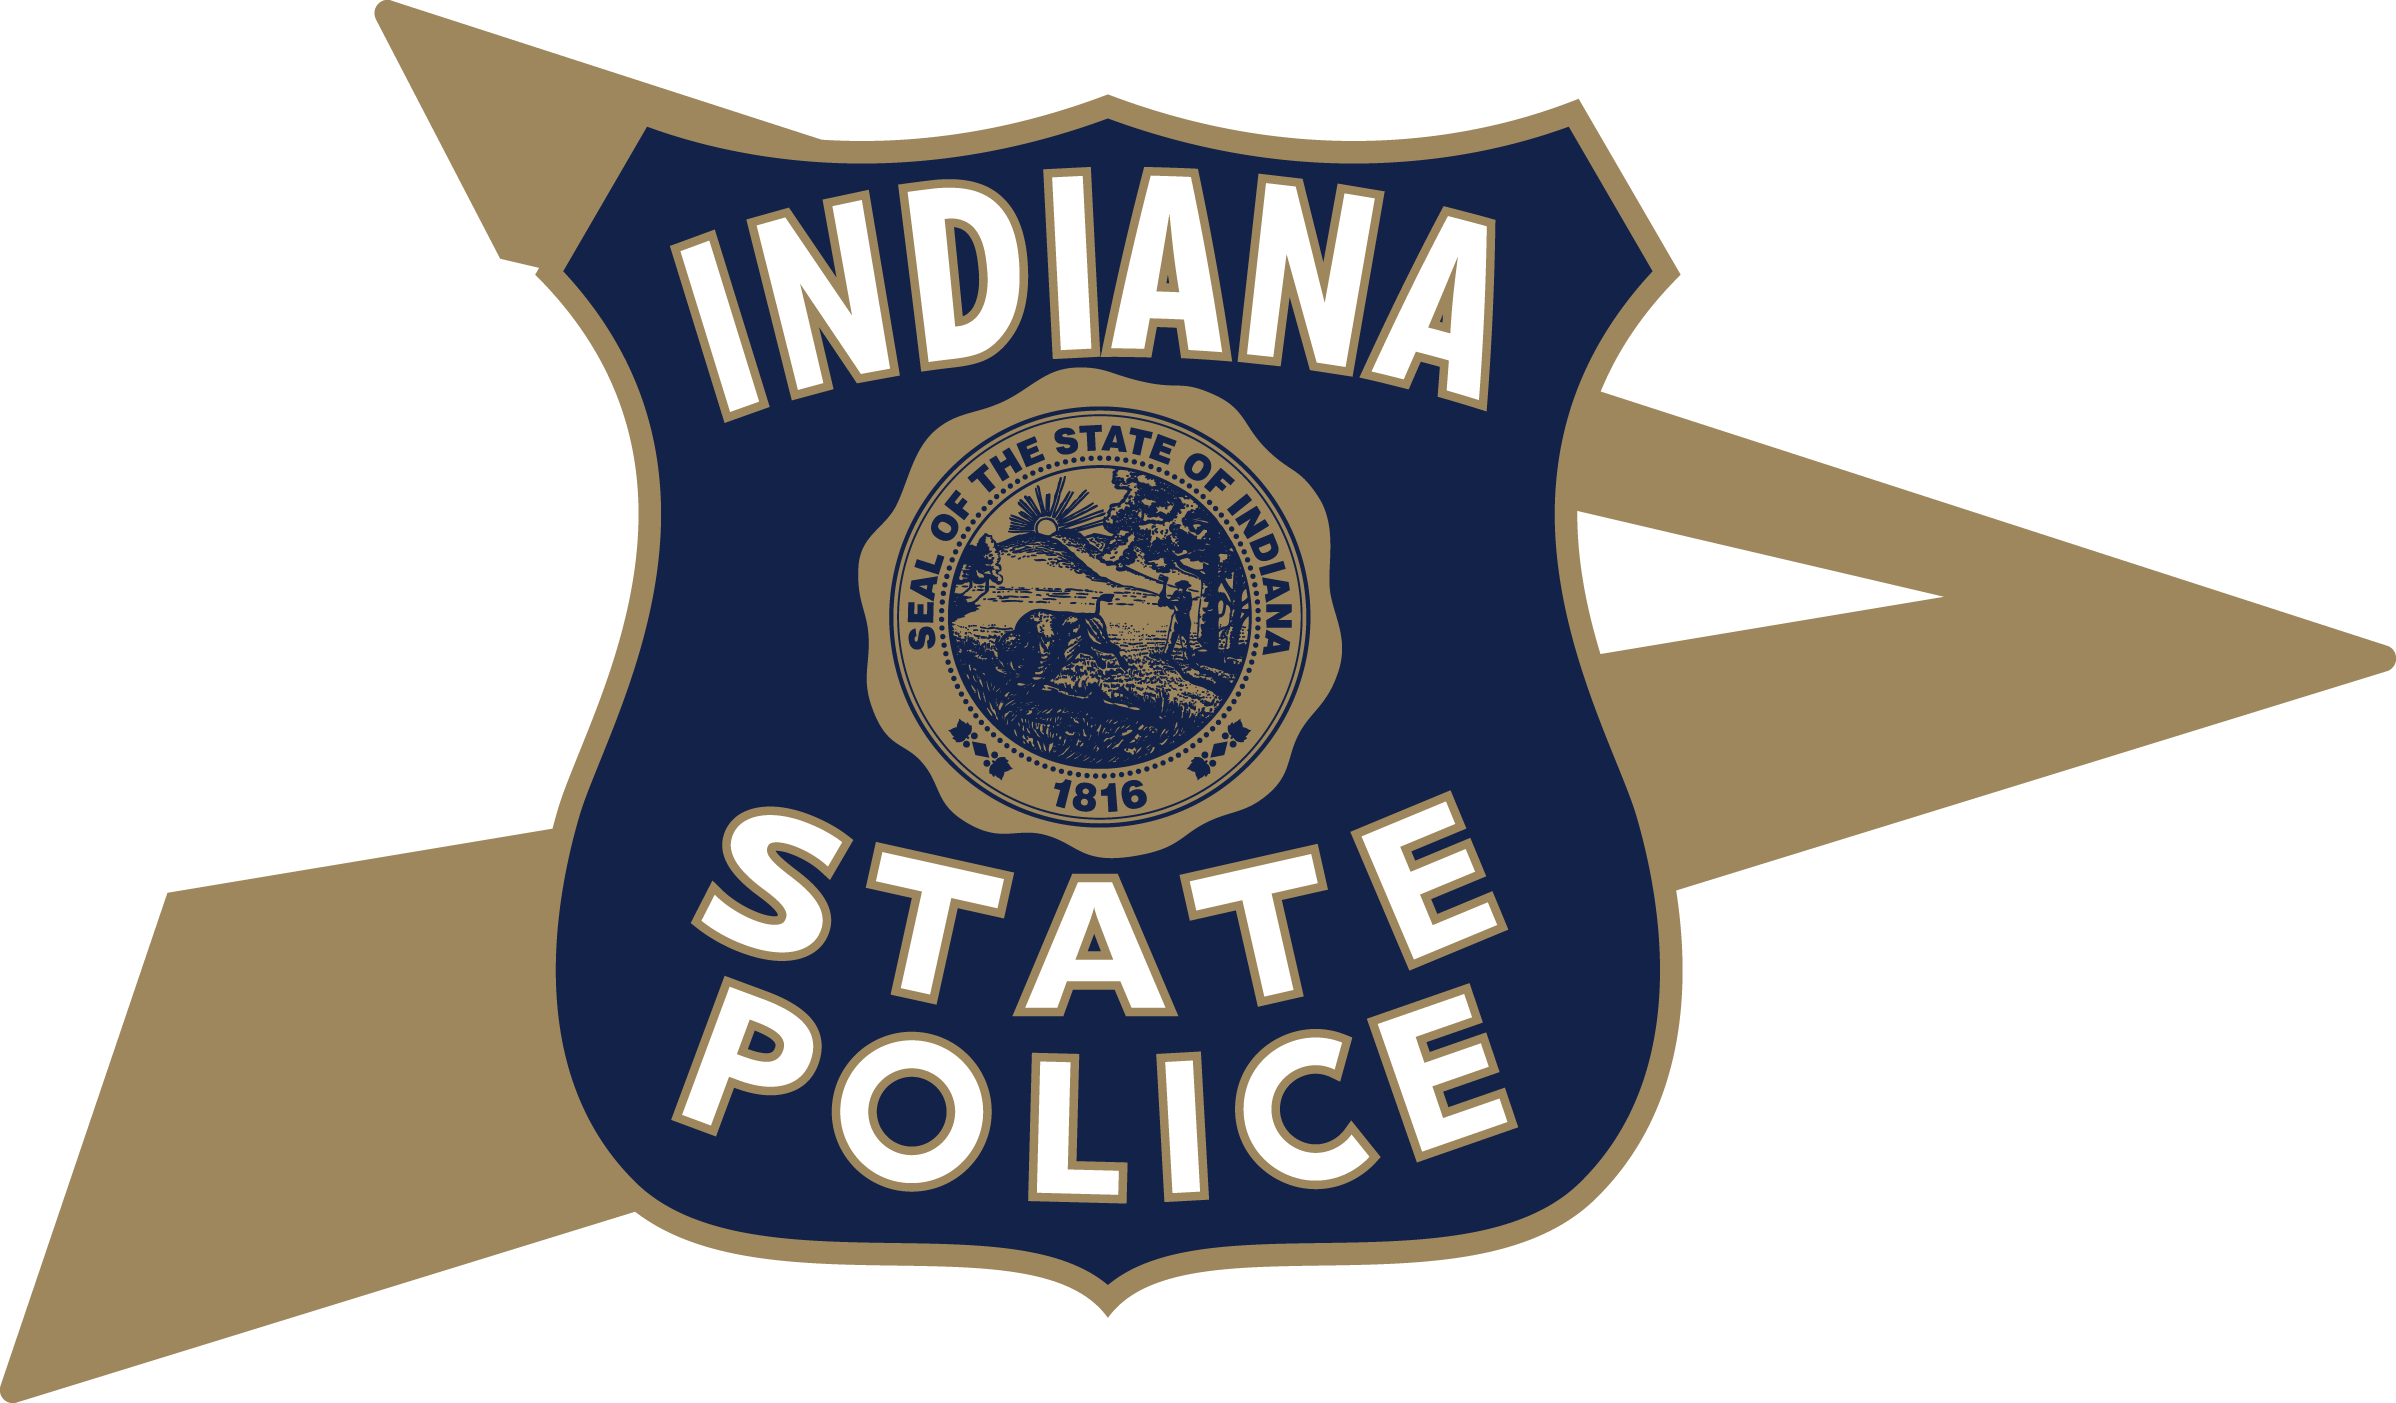 Logo for Law Enforcement Agency serving the State of Indiana.